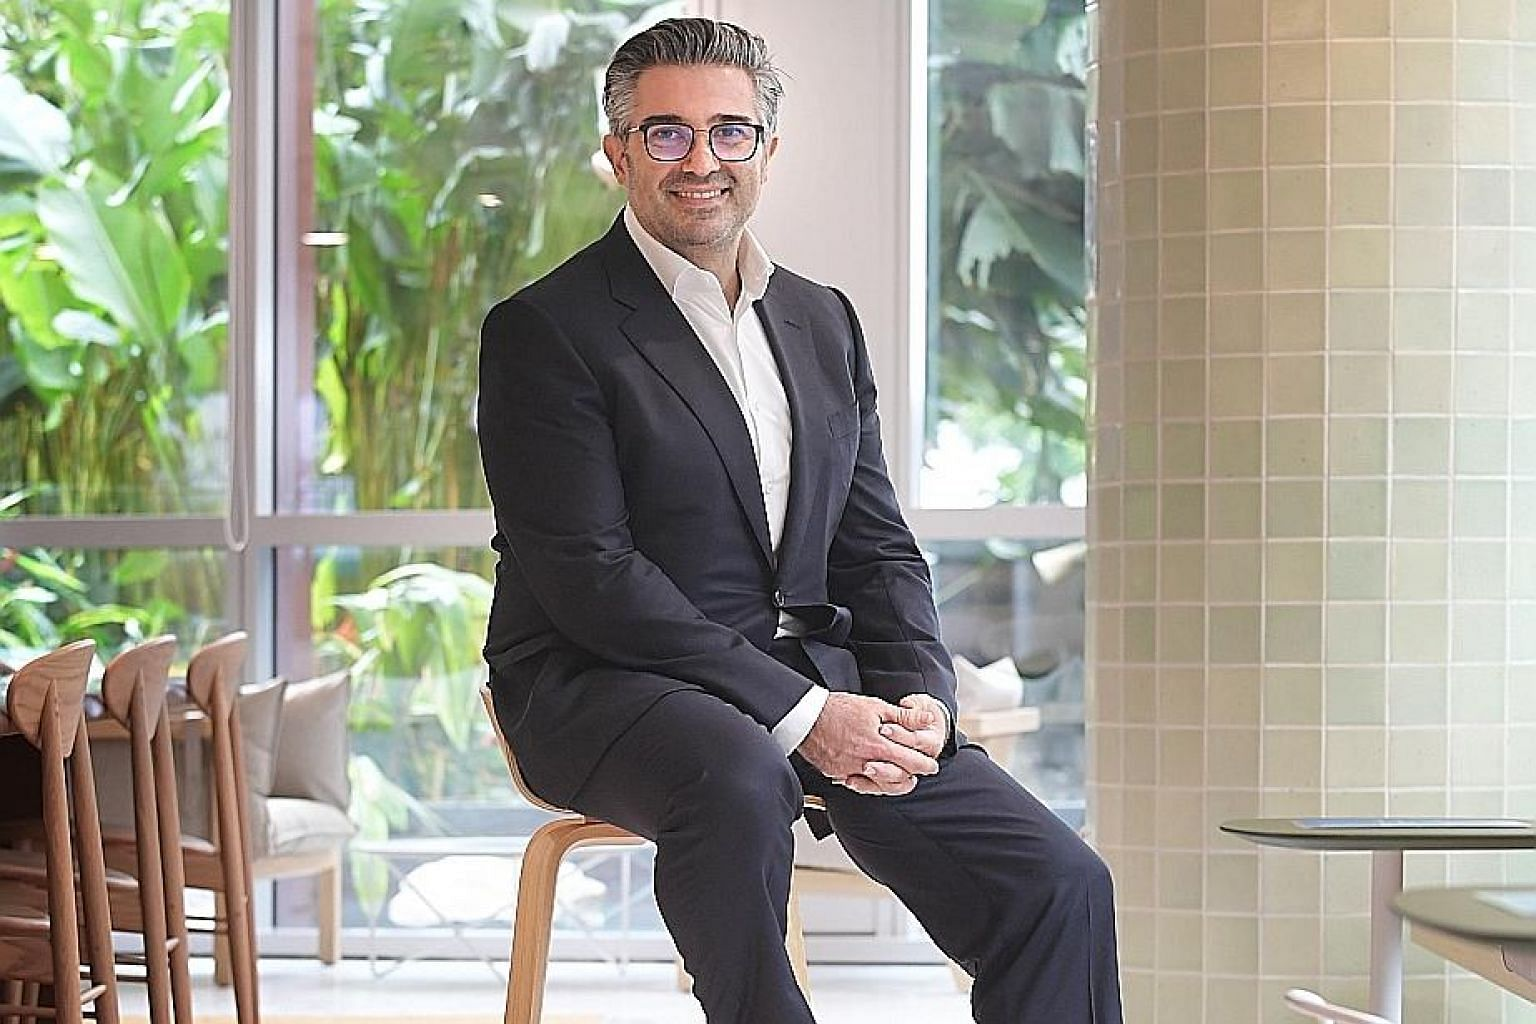 Mr Tony Lombardo, Lendlease's chief executive for Asia, says the company's priority during the Covid-19 outbreak was staff safety first, then managing the liquidity of the business. Despite the crisis, Lendlease has managed to keep staff cuts to a ha